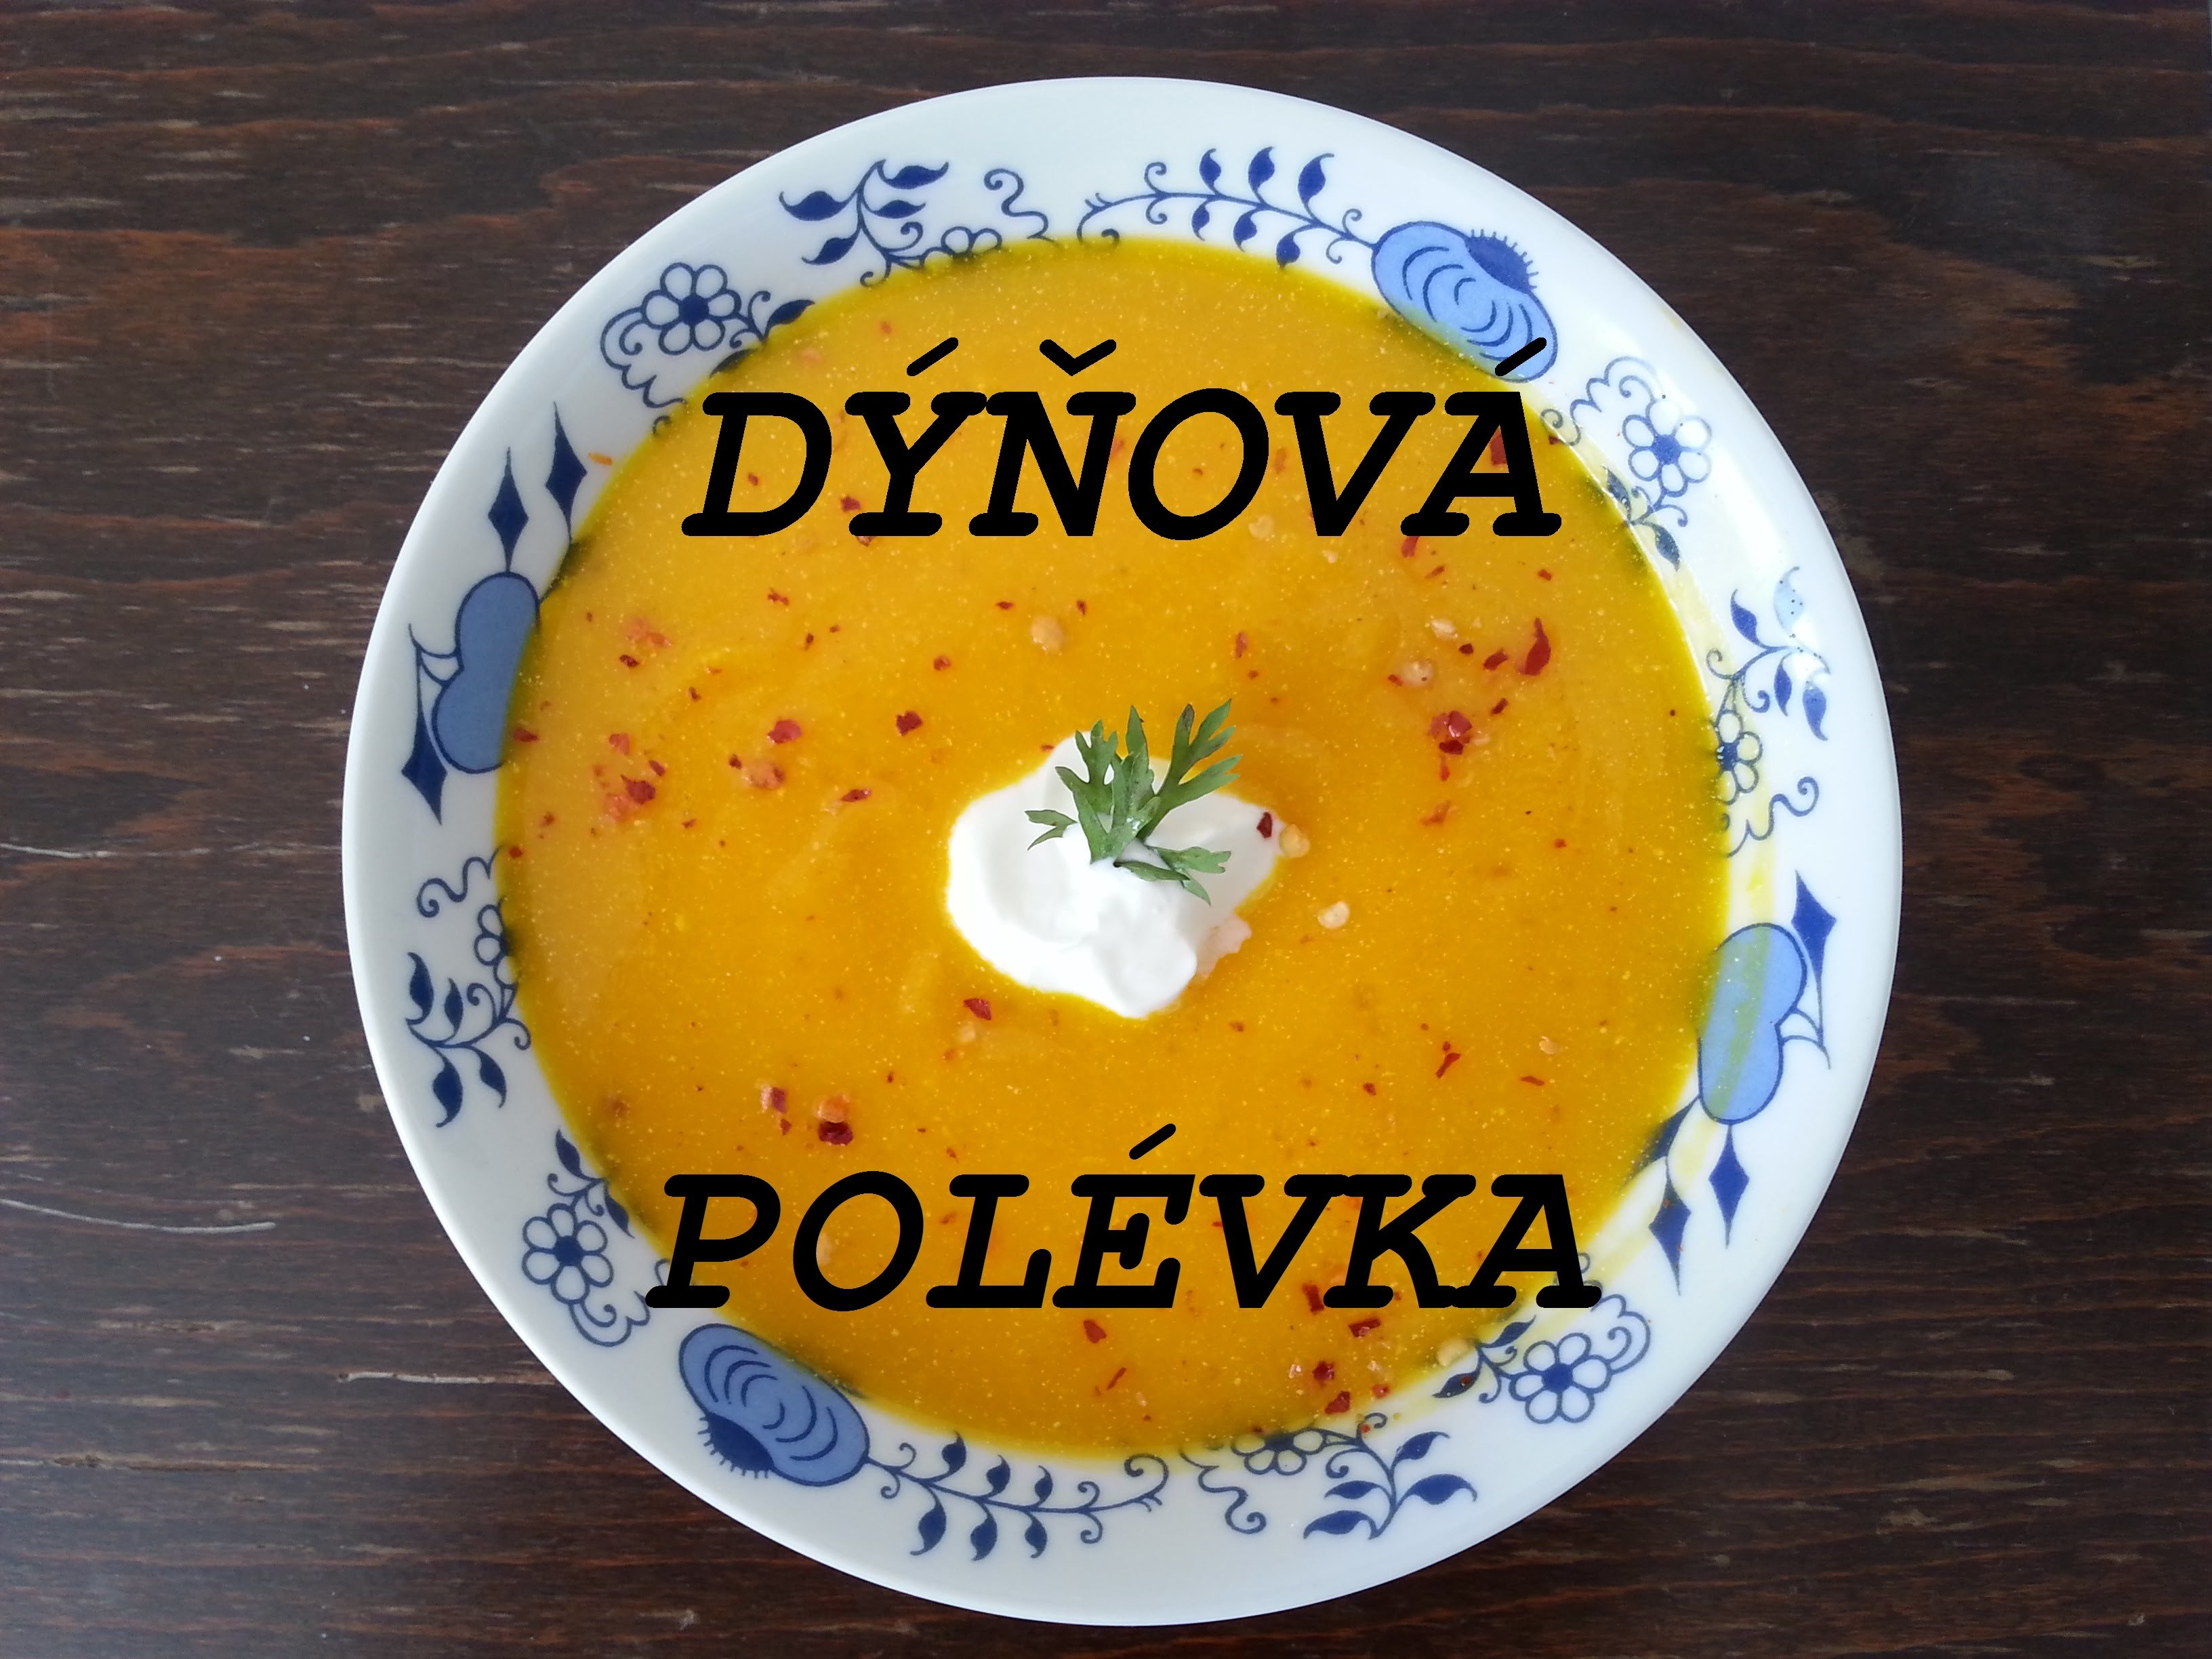 DIY Dýňová polévka. easy pumpkin soup (ideal for Halloween)